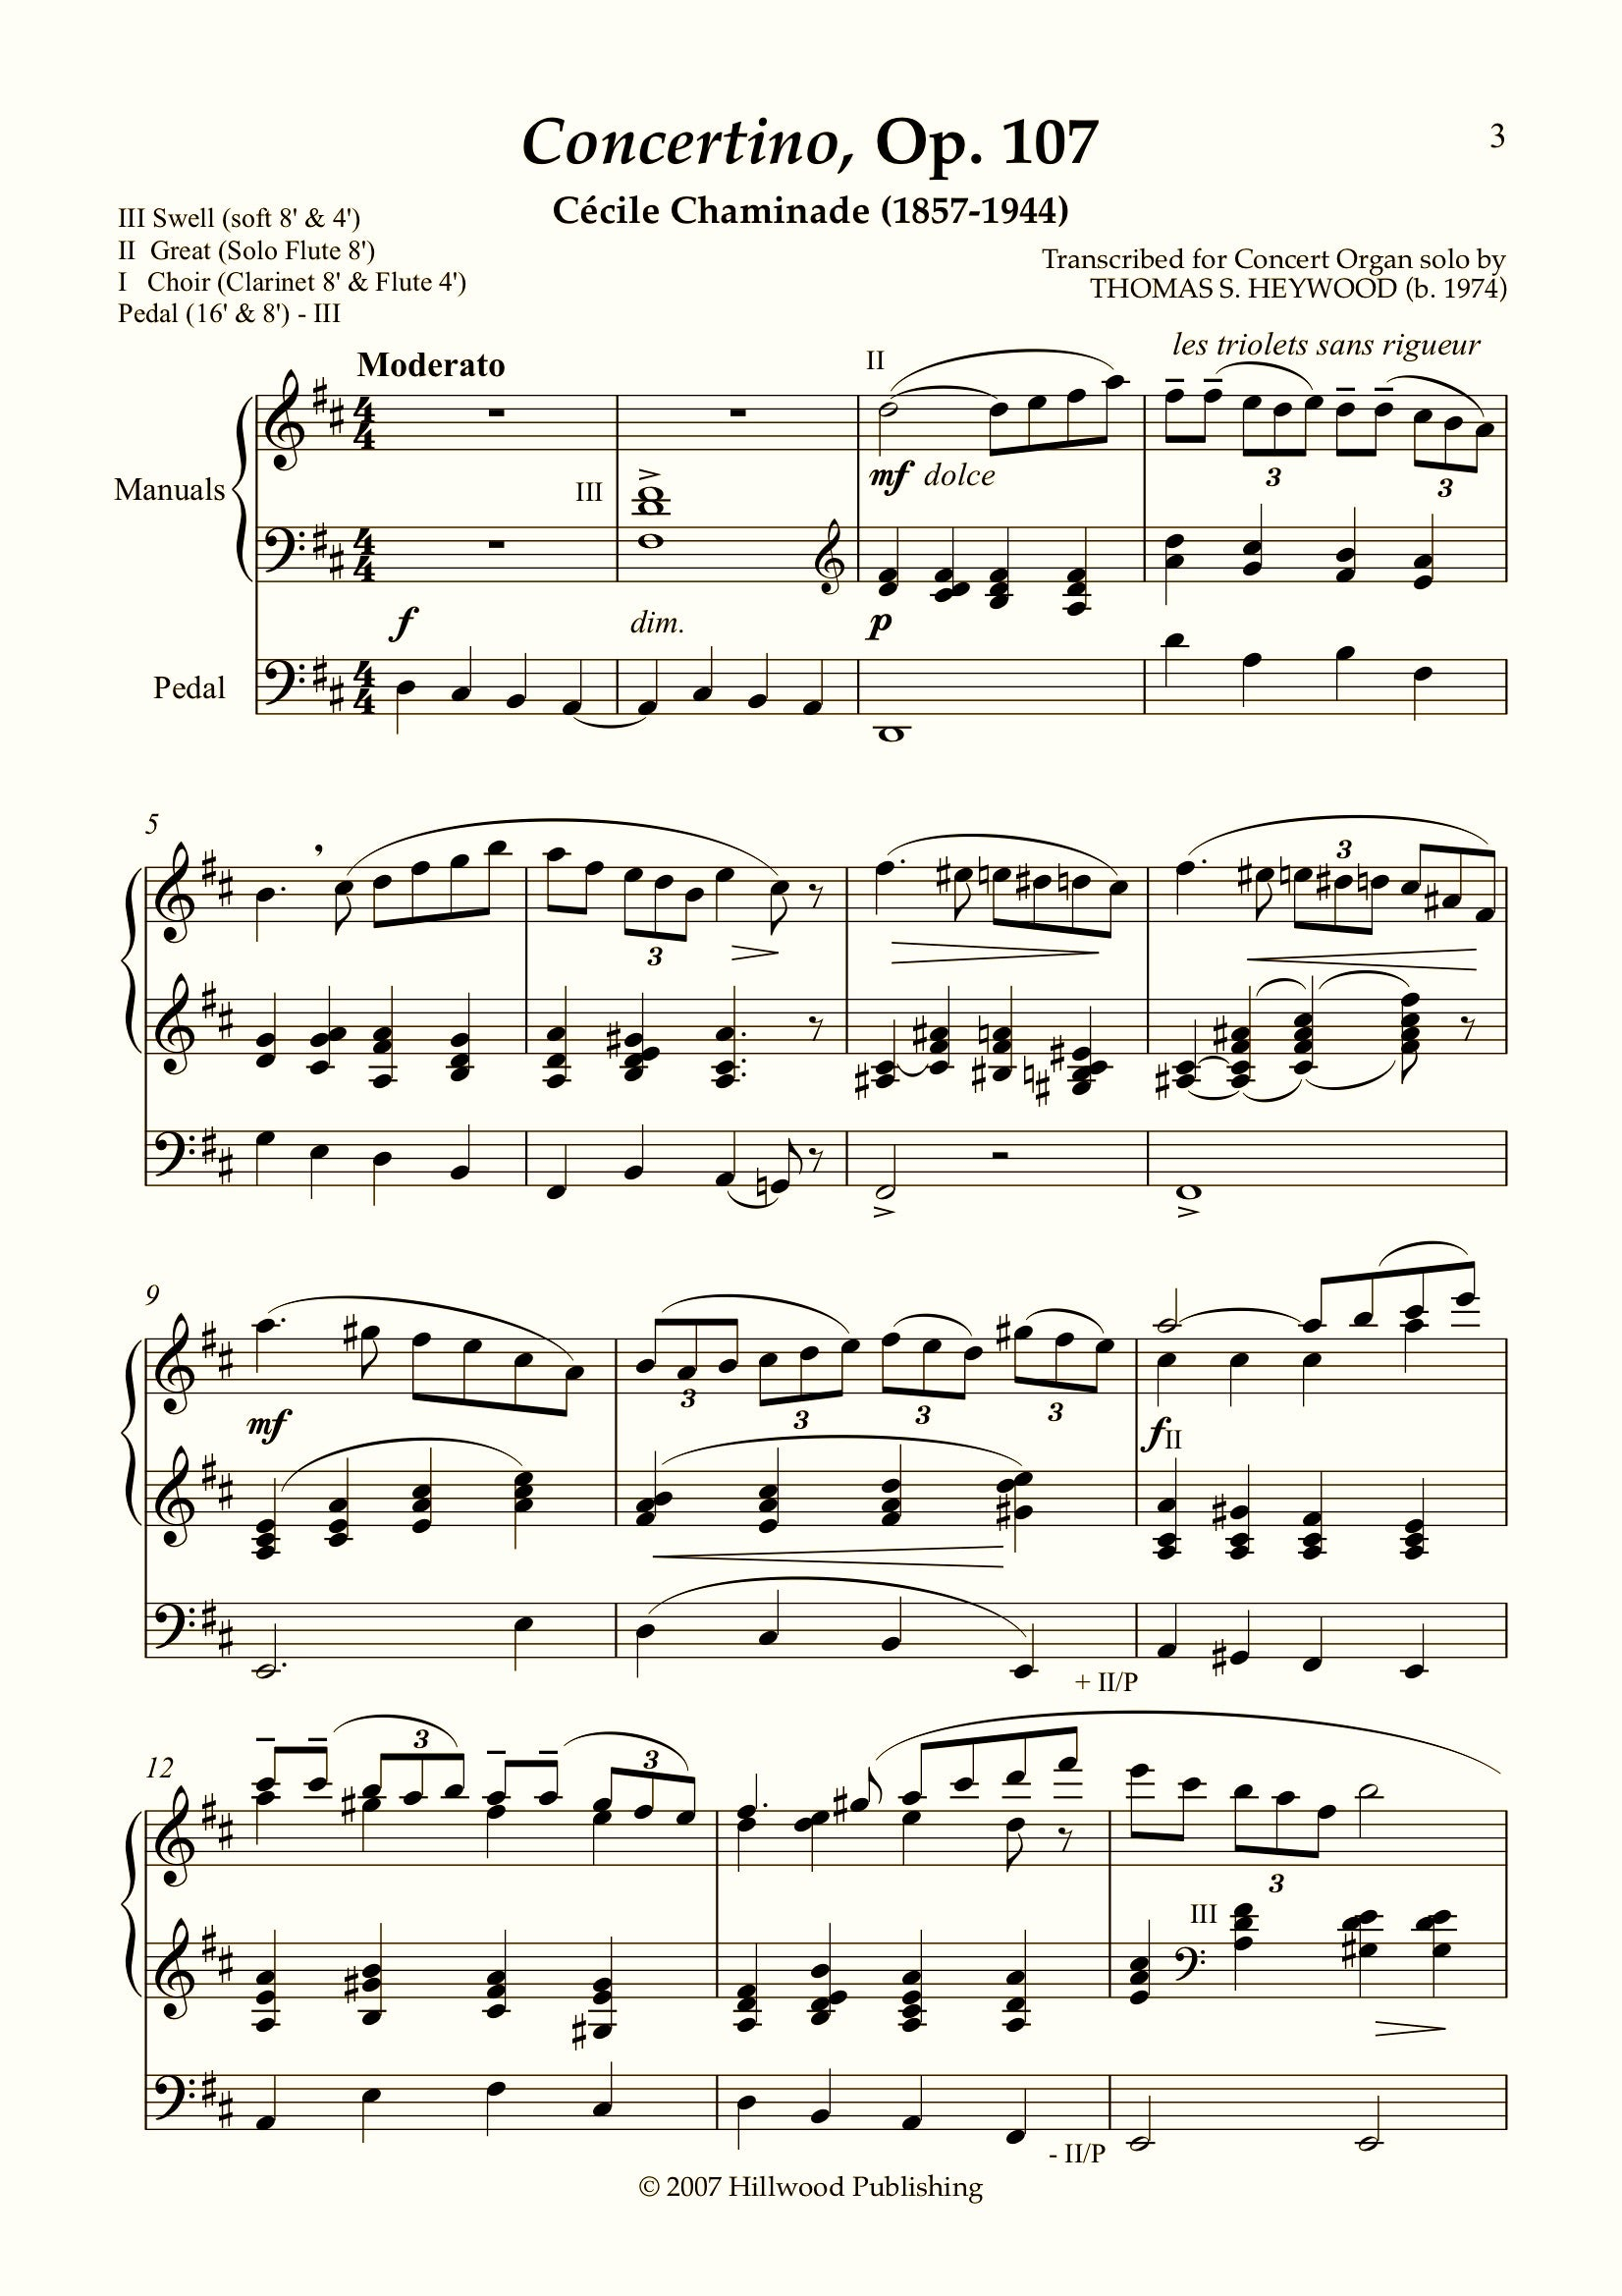 Chaminade/Heywood - Concertino, Op. 107 (Score) | Thomas Heywood | Concert Organ International